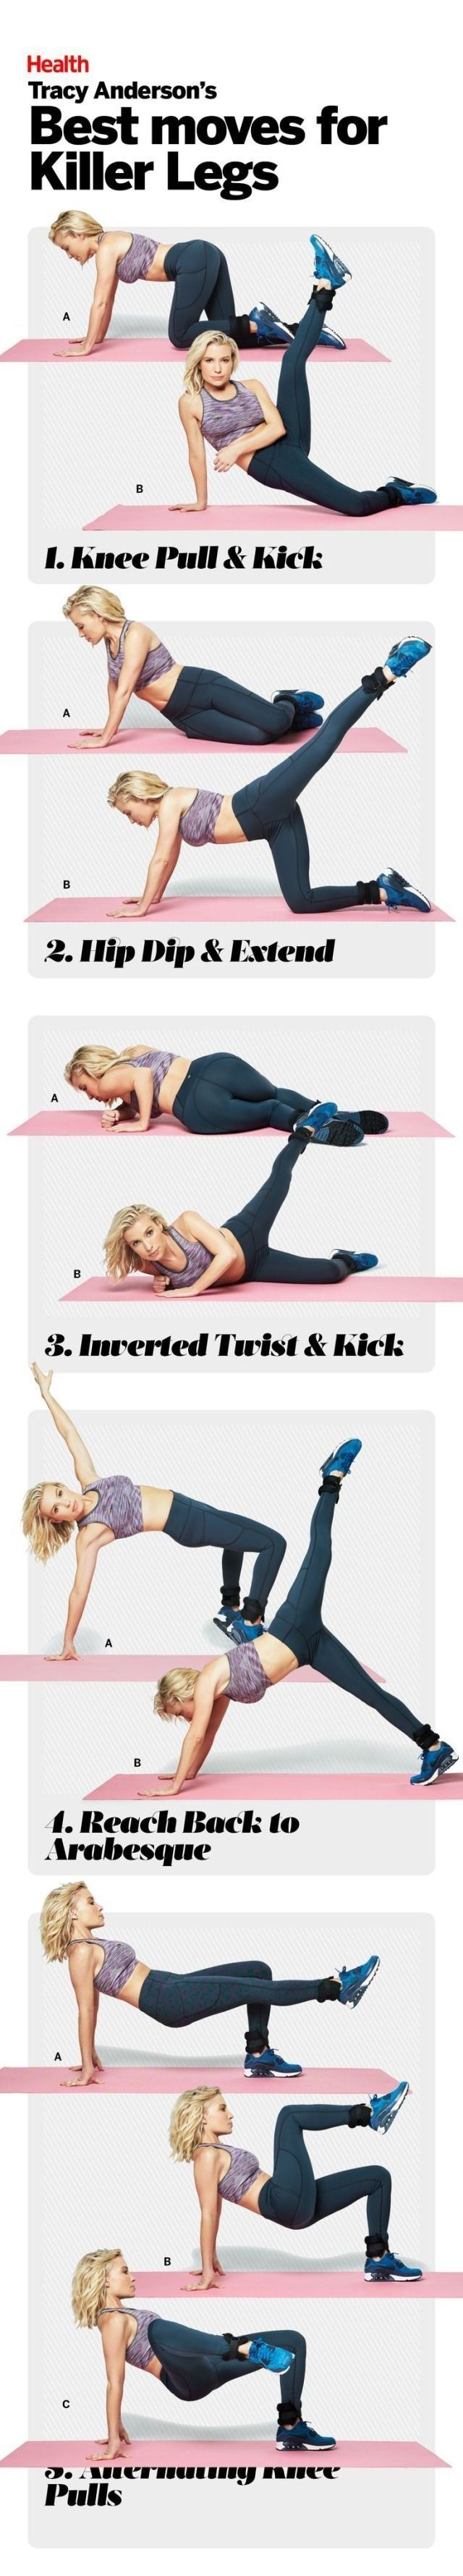 Tracy Anderson's Best Moves for Killer Legs: Follow these five moves to get your legs slim, toned, and super sexy. #HEALTHxTA   Health.com